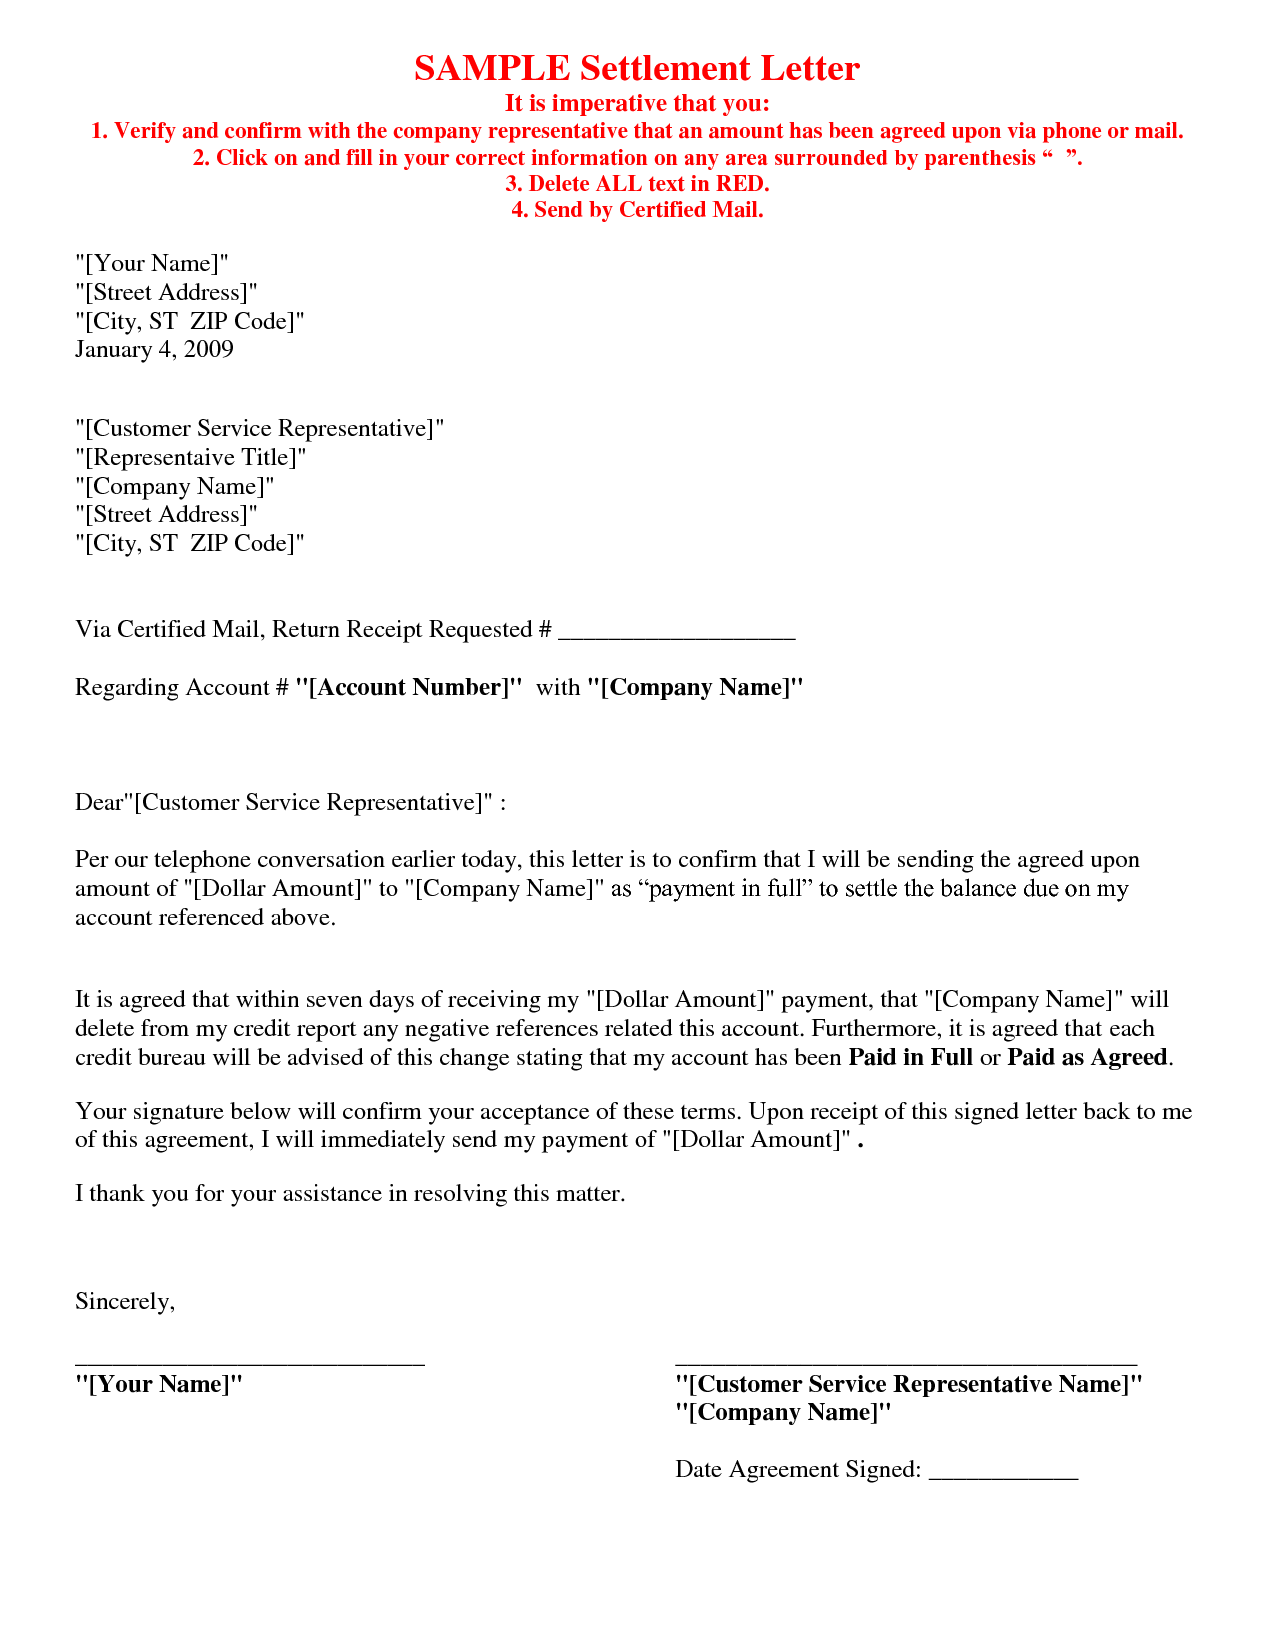 debt settlement letter picture 5 of 17 debt settlement agreement letter 1181